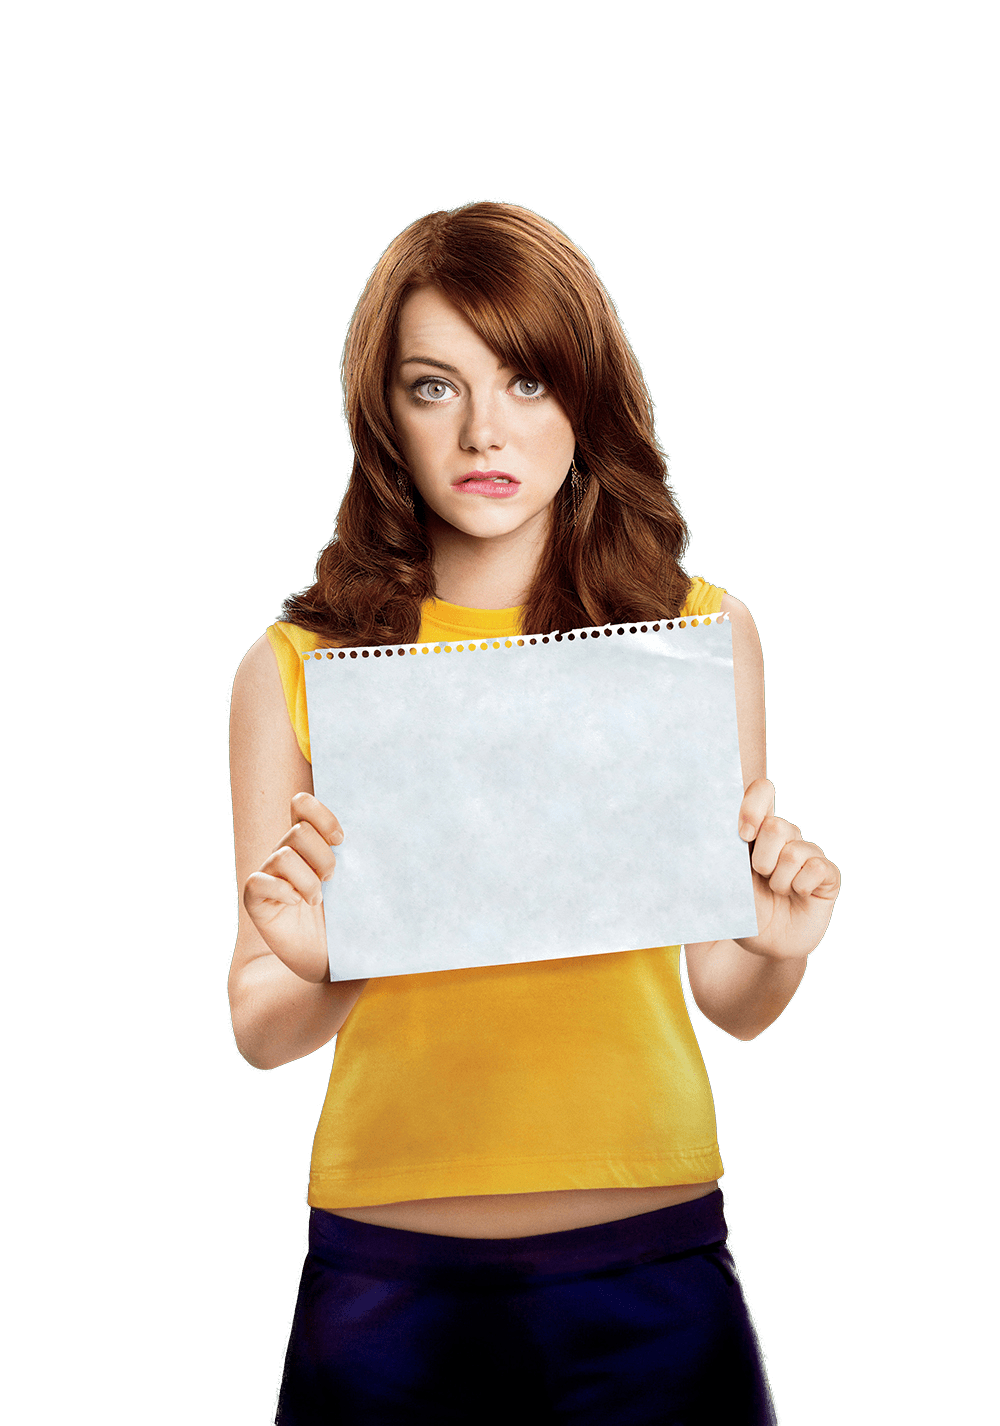 Emma Stone Holding Paper transparent PNG.